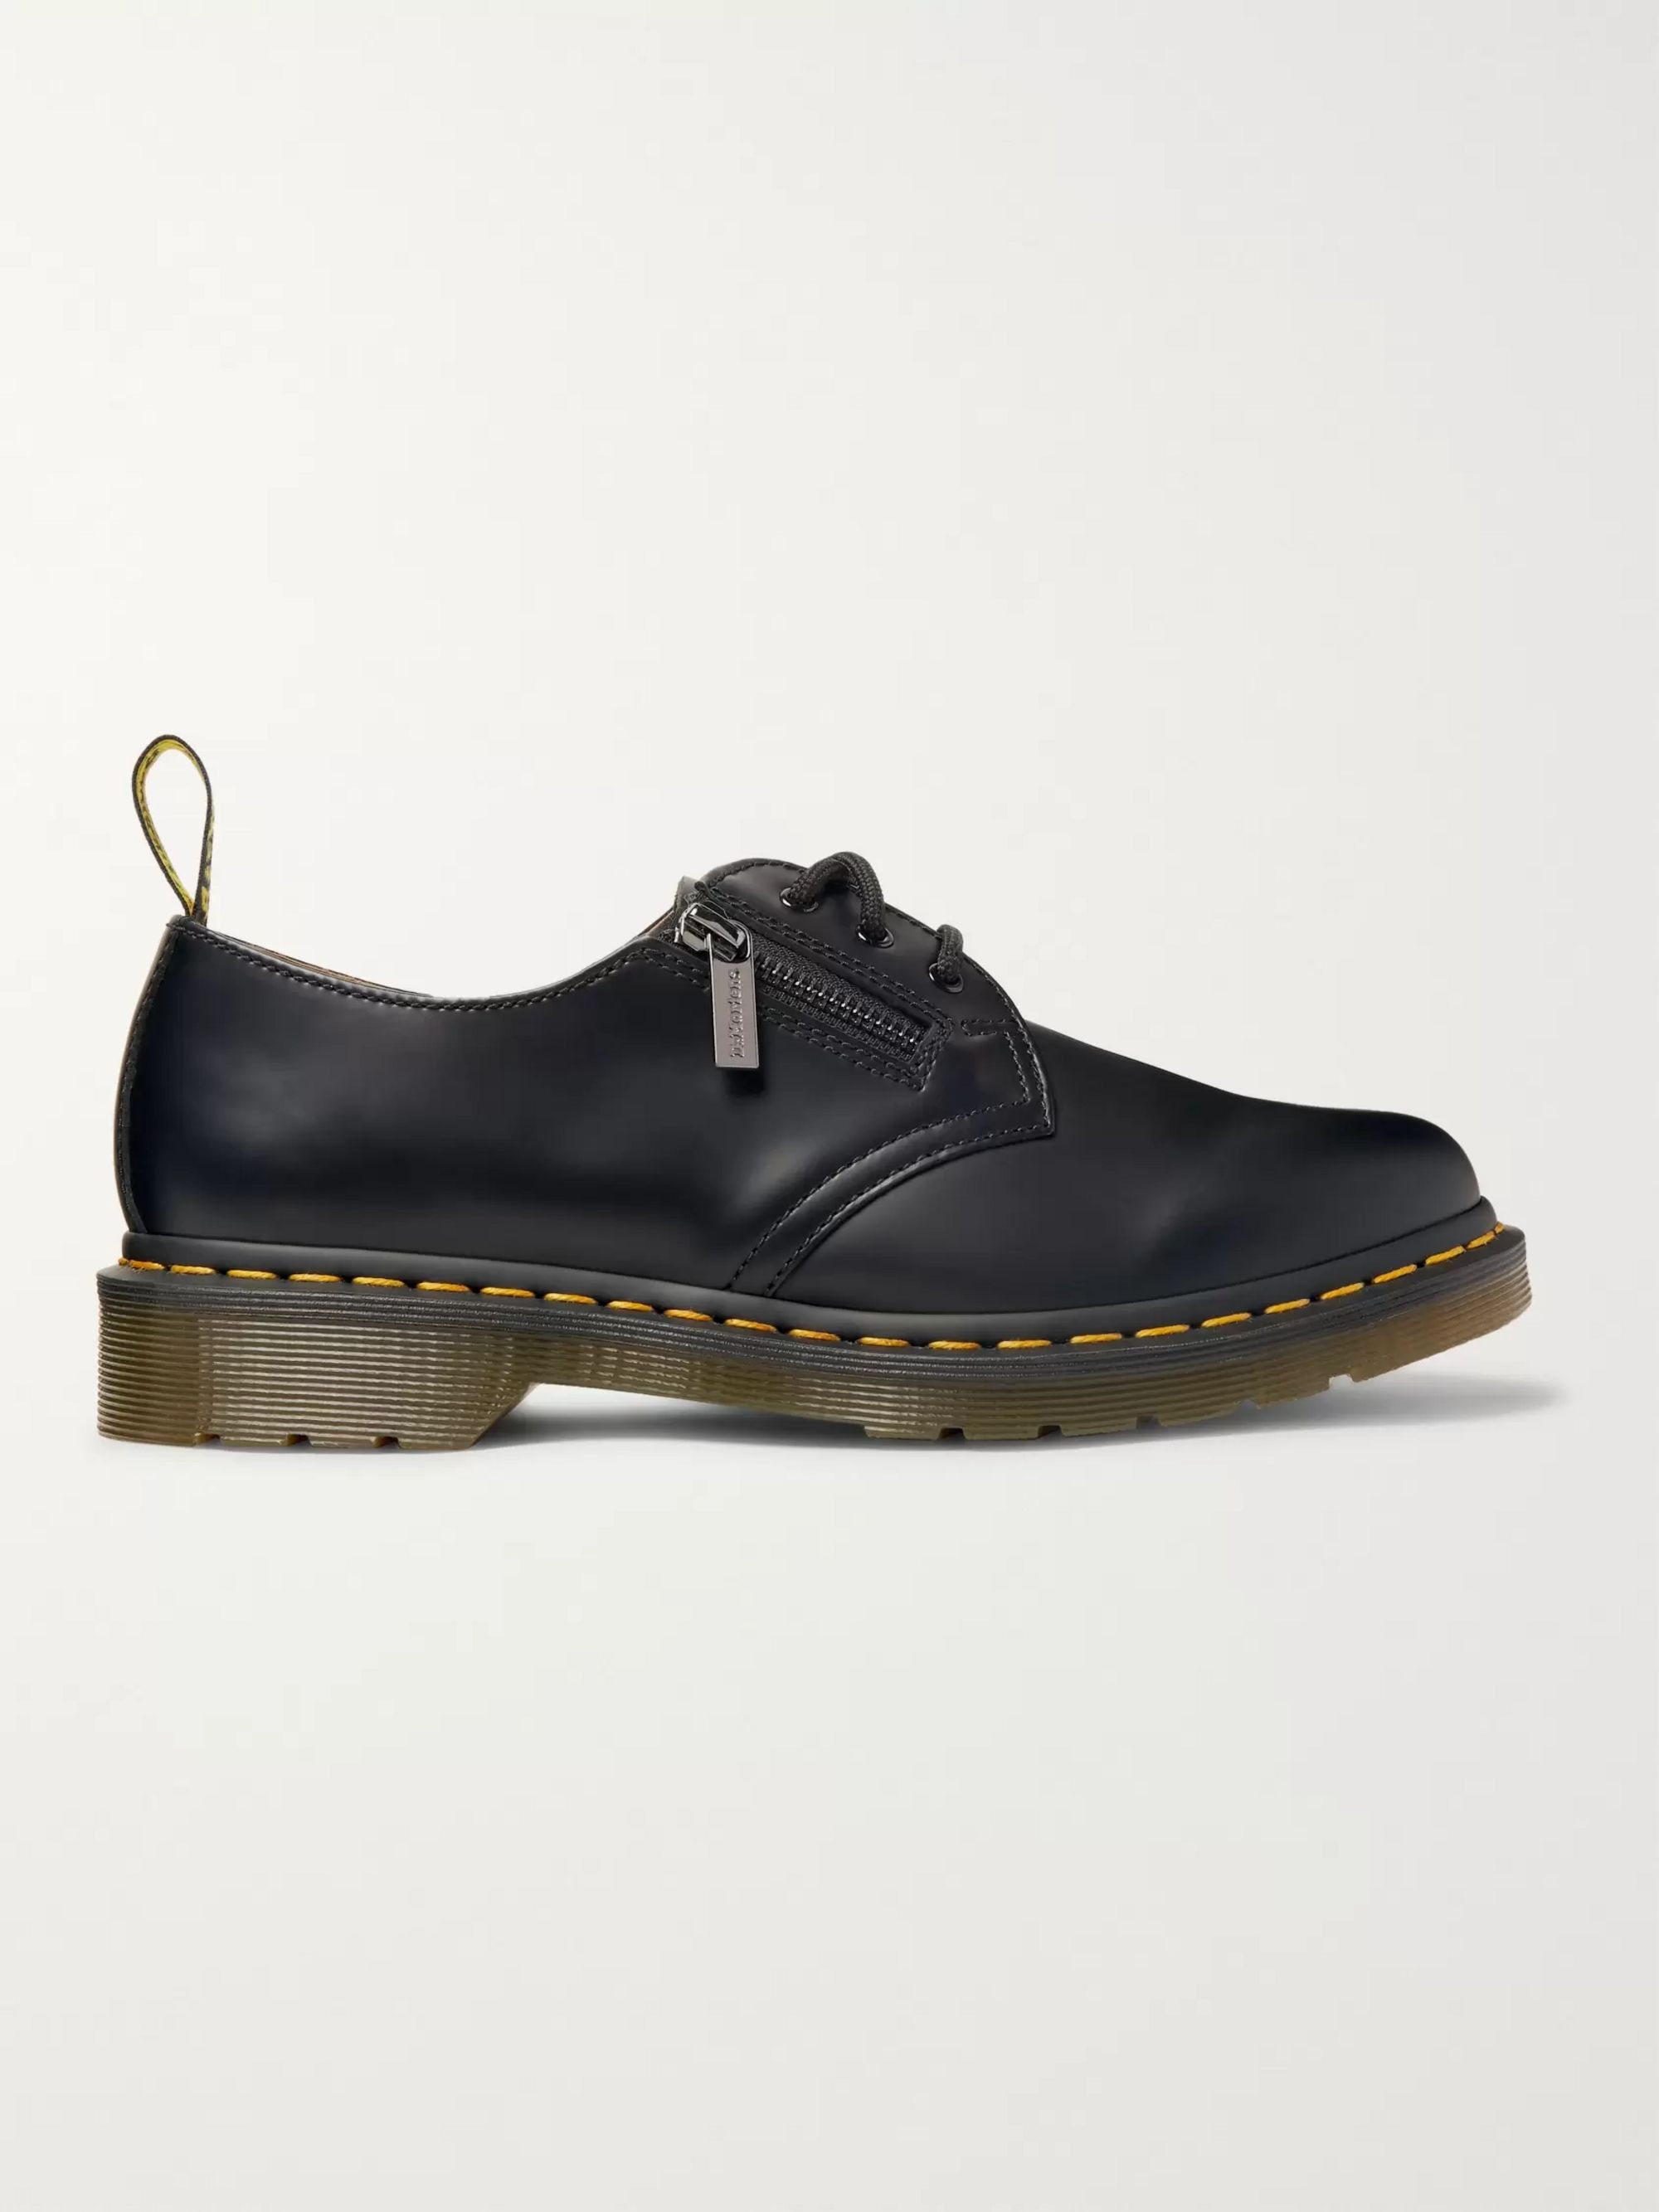 Beams + Dr. Martens Leather 1461 Derby Shoes